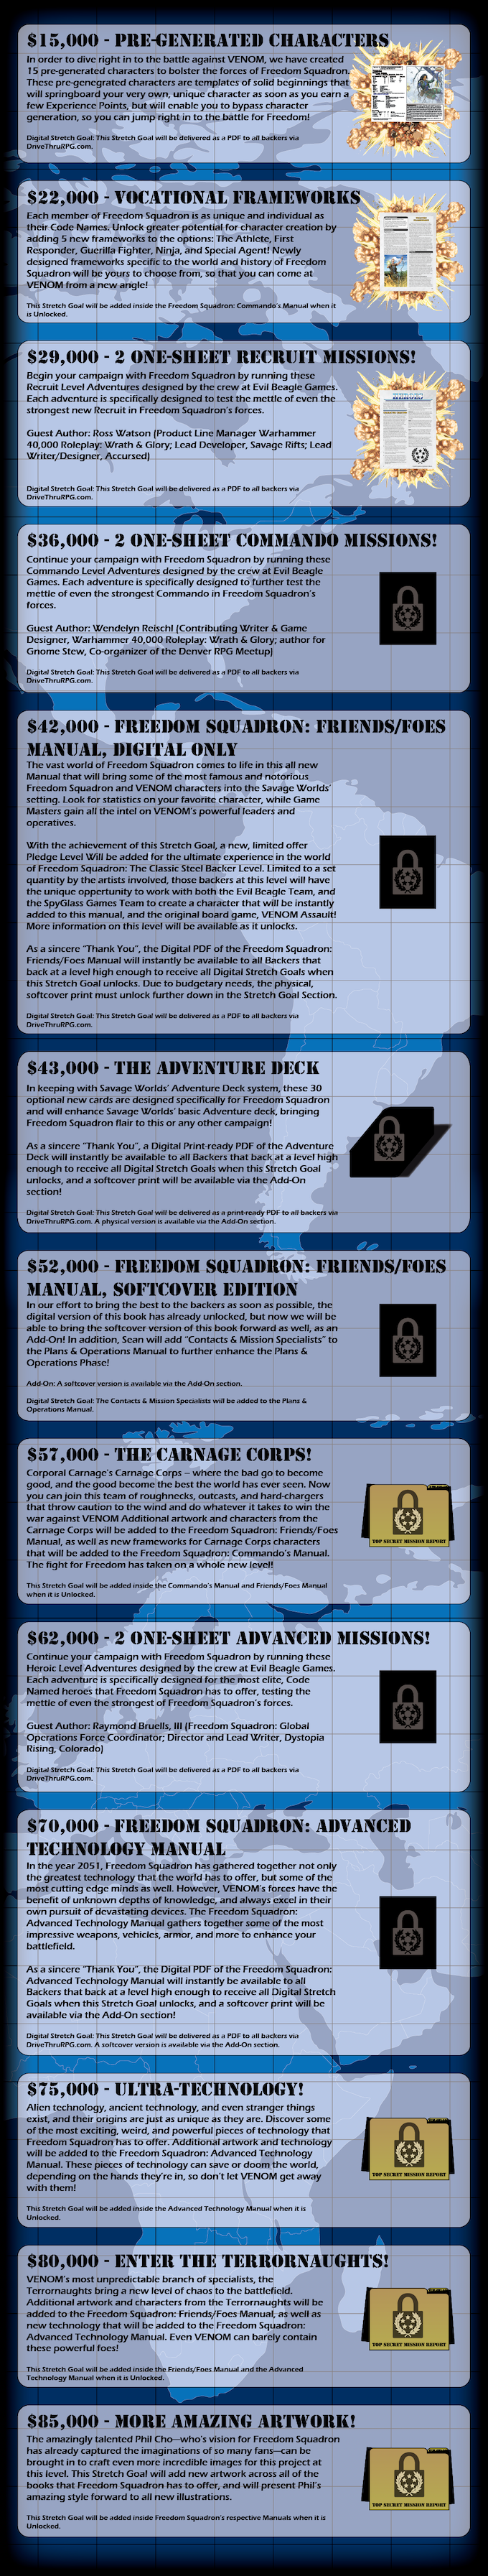 Freedom Squadron - A Savage Worlds Setting by SpyGlass Games